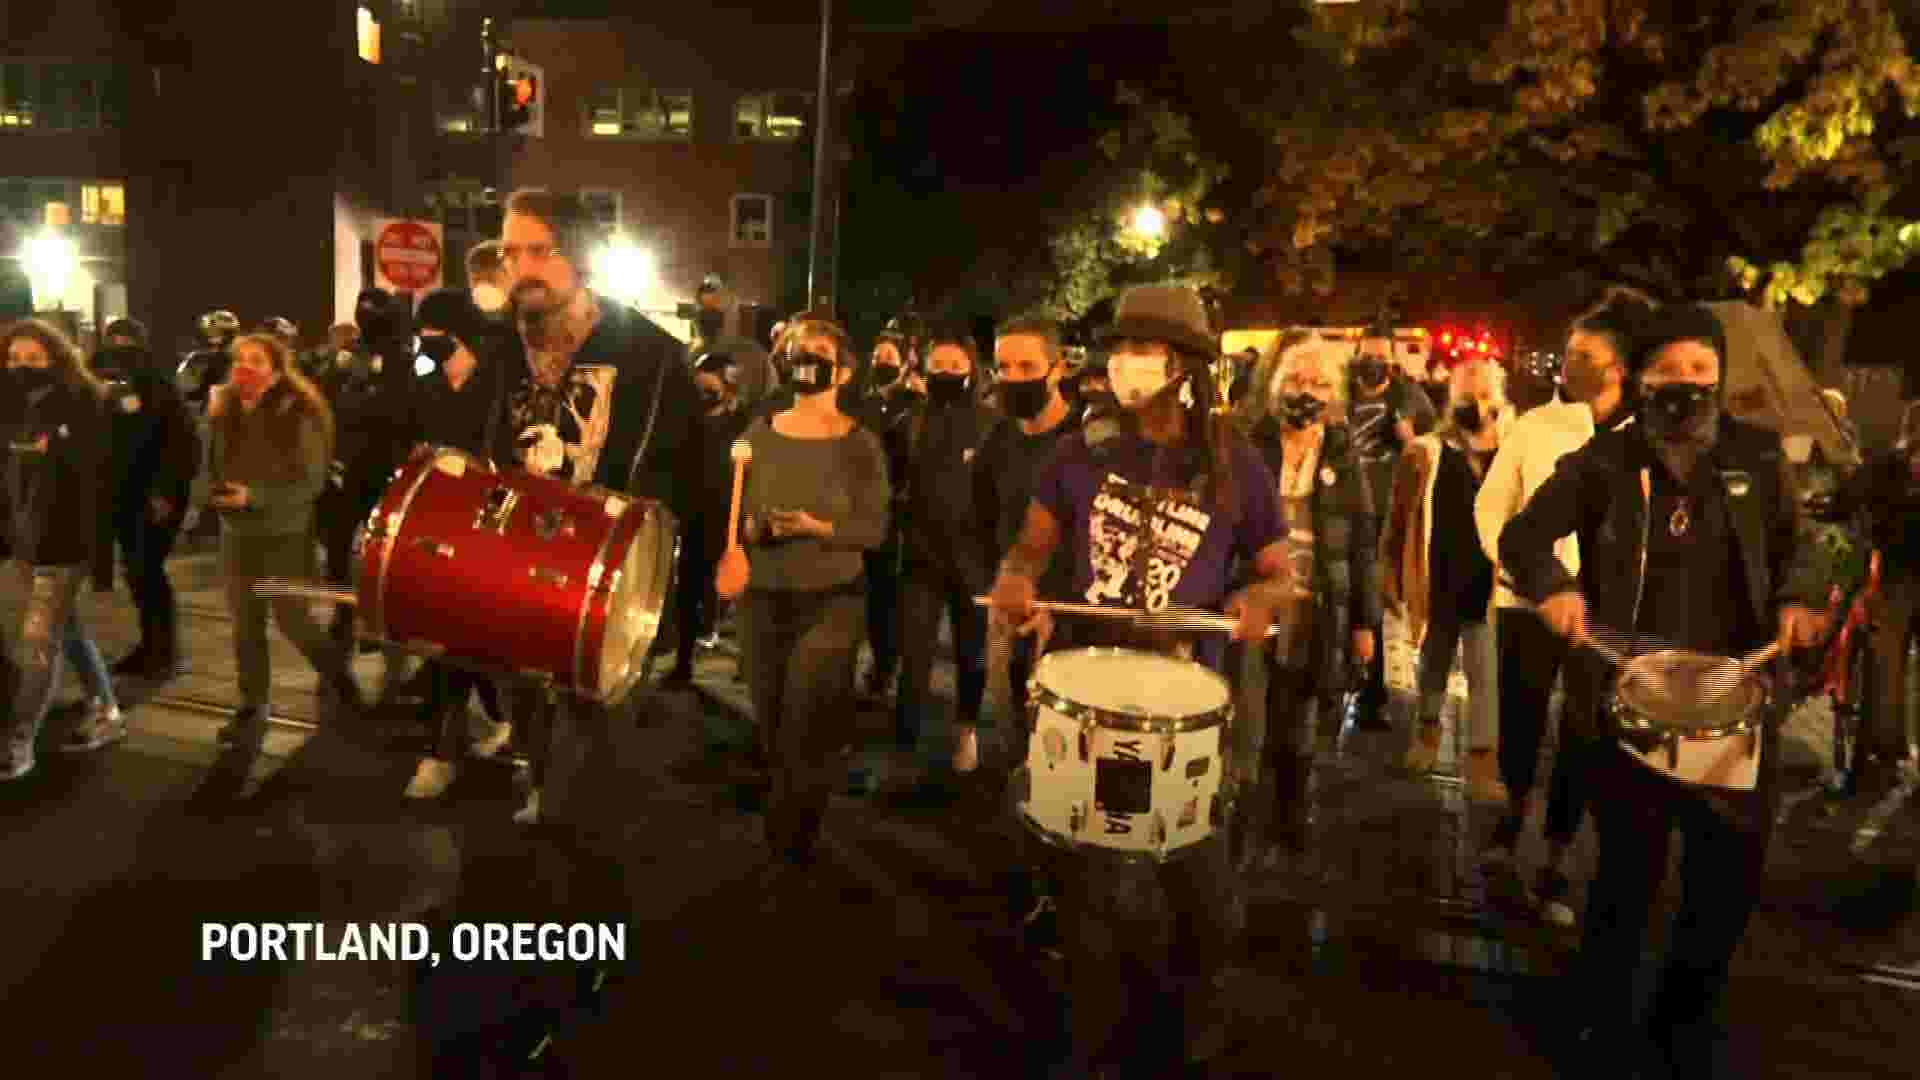 Election results bring out protests across U.S. 1